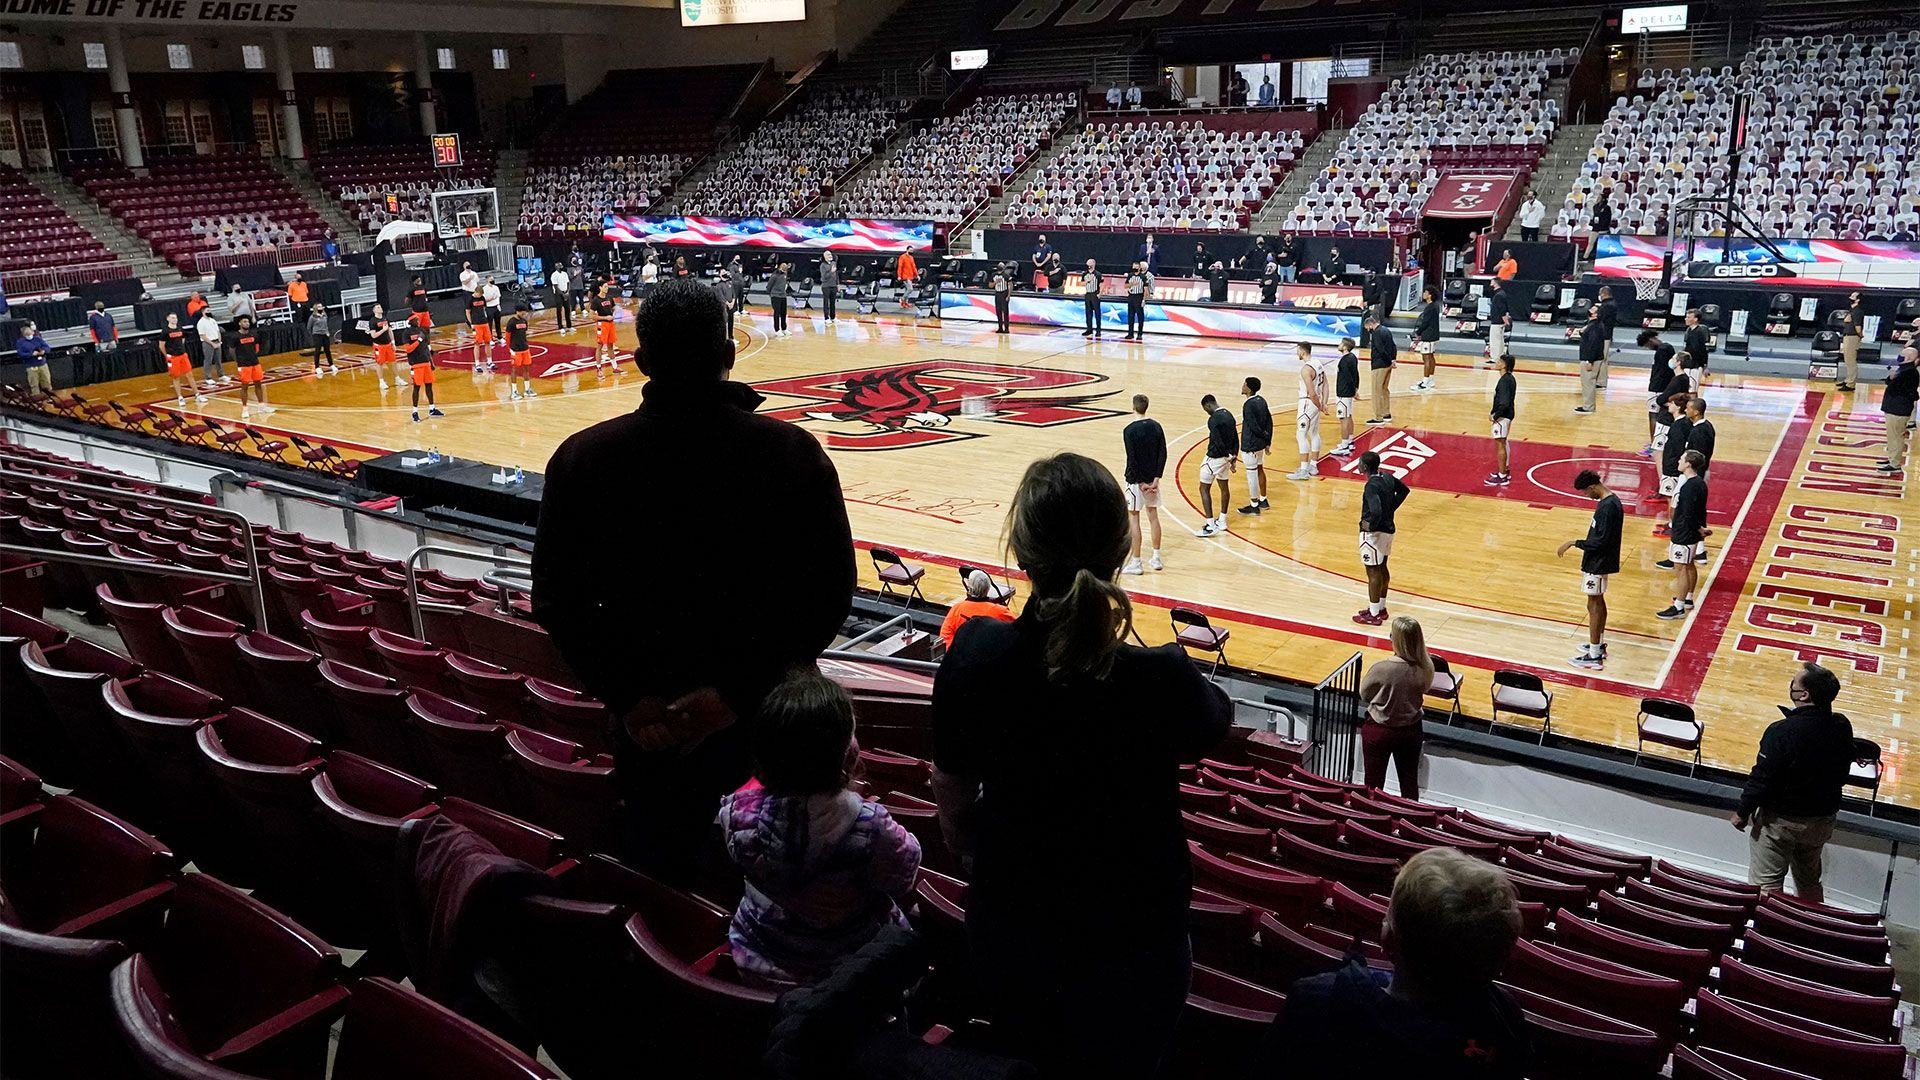 Boston College men's, women's basketball on pause due to COVID-19